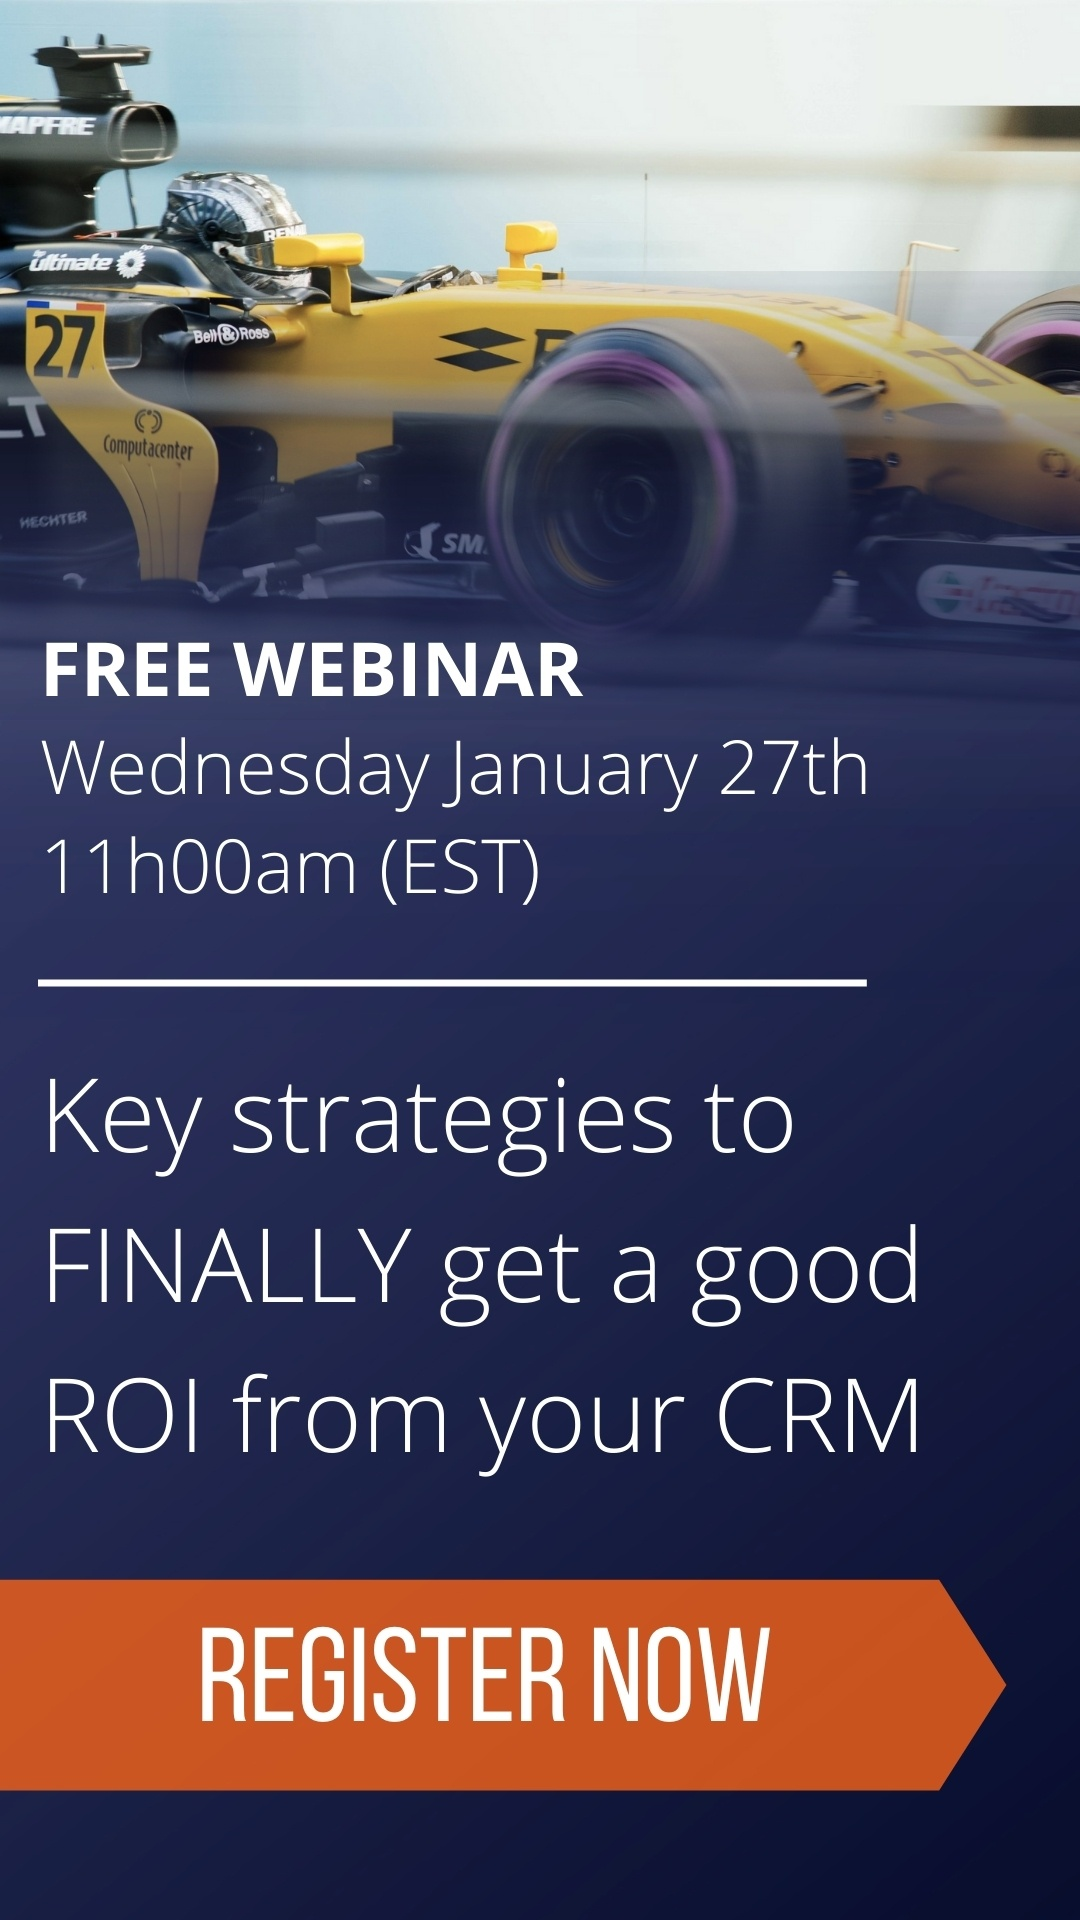 Key strategies to get a good ROI from your CRM